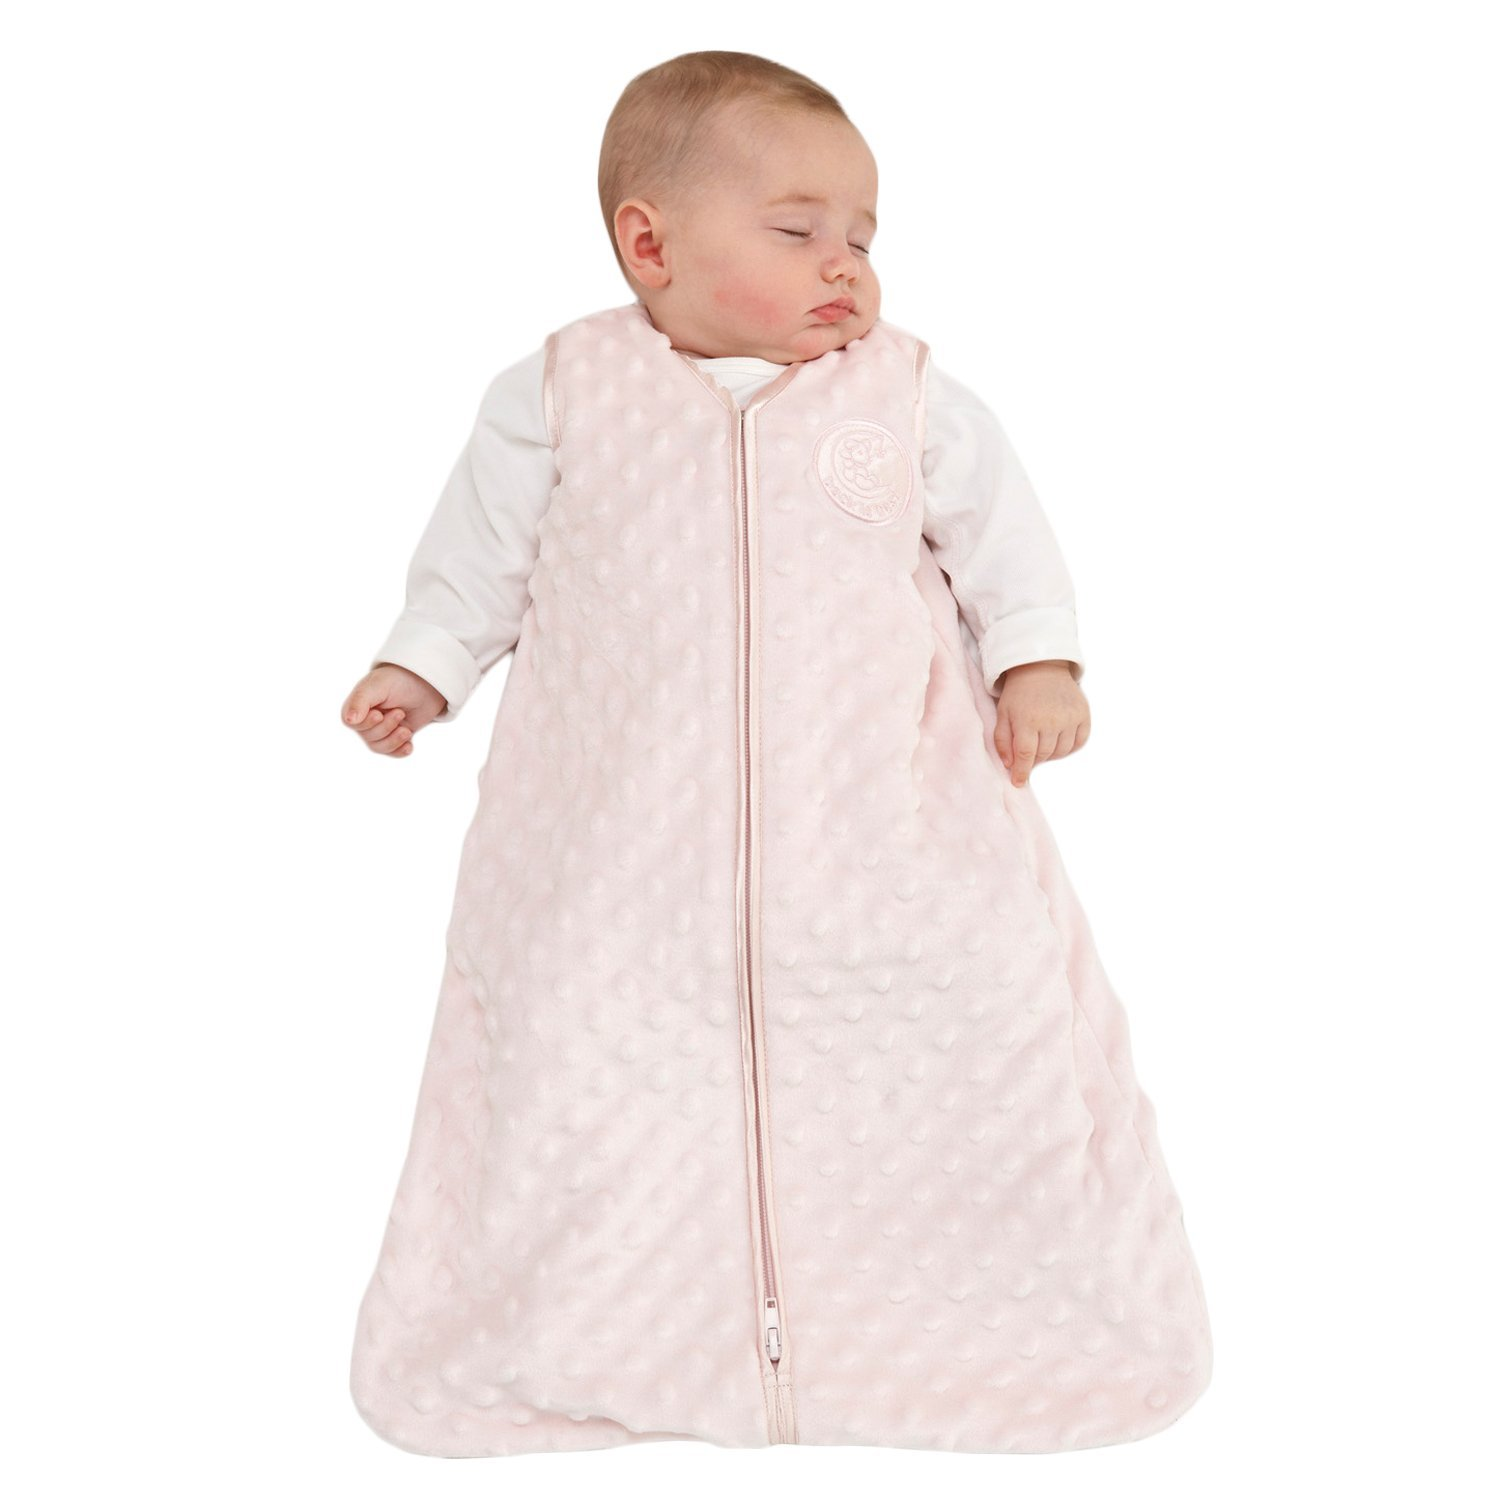 release date: fae16 604b3 SleepSack Plush Dot Velboa Wearable Blanket, Pink, Small..., By Halo Ship  from US